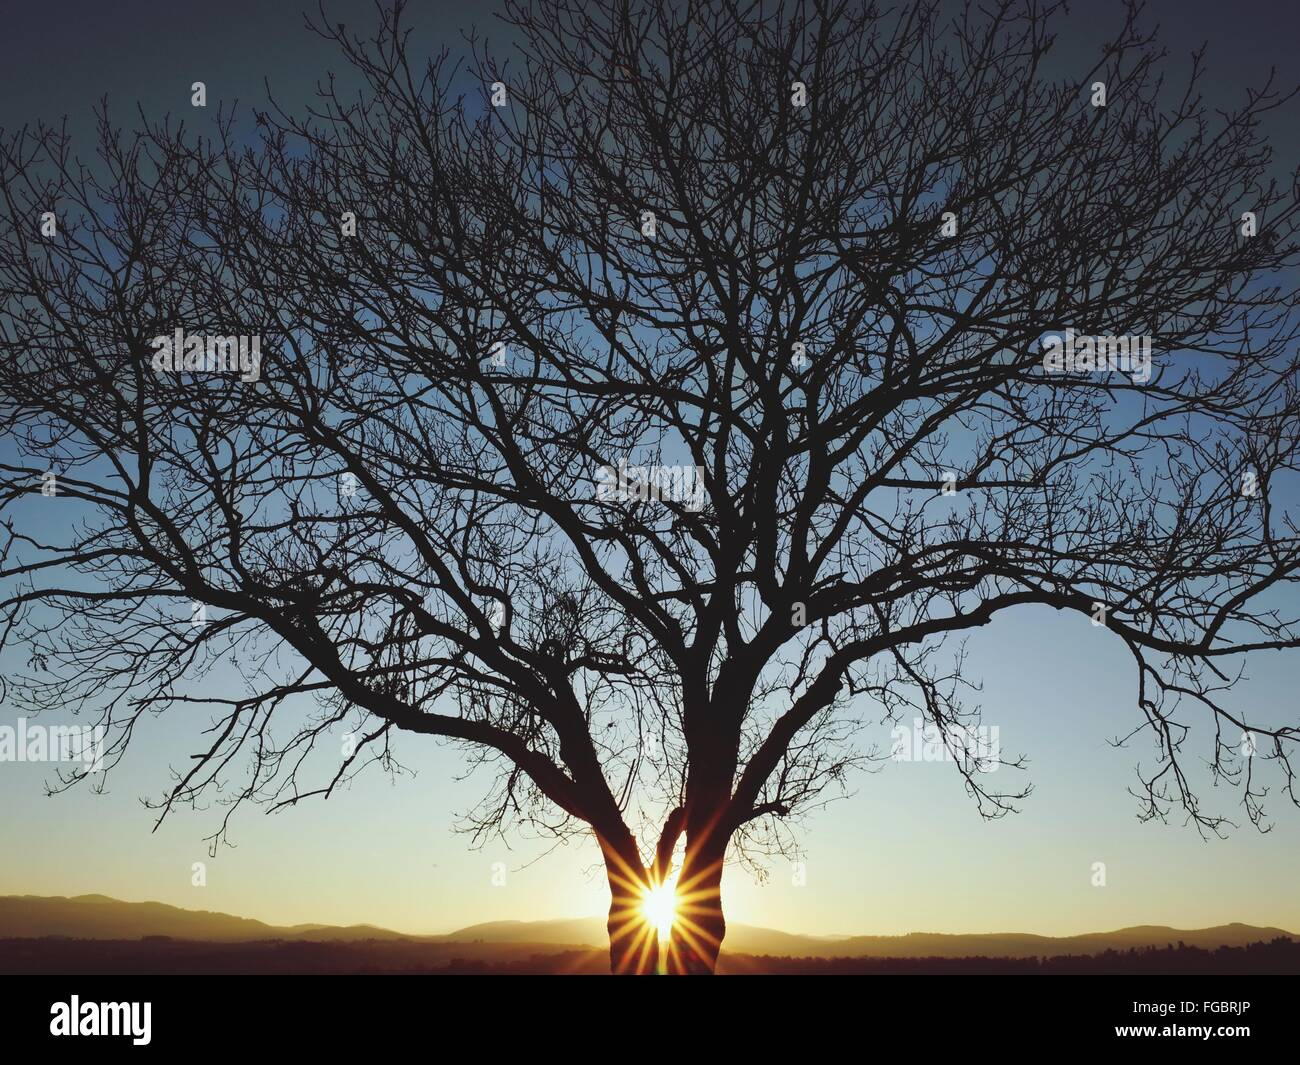 Silhouette Bare Tree Against Sky During Sunset - Stock Image